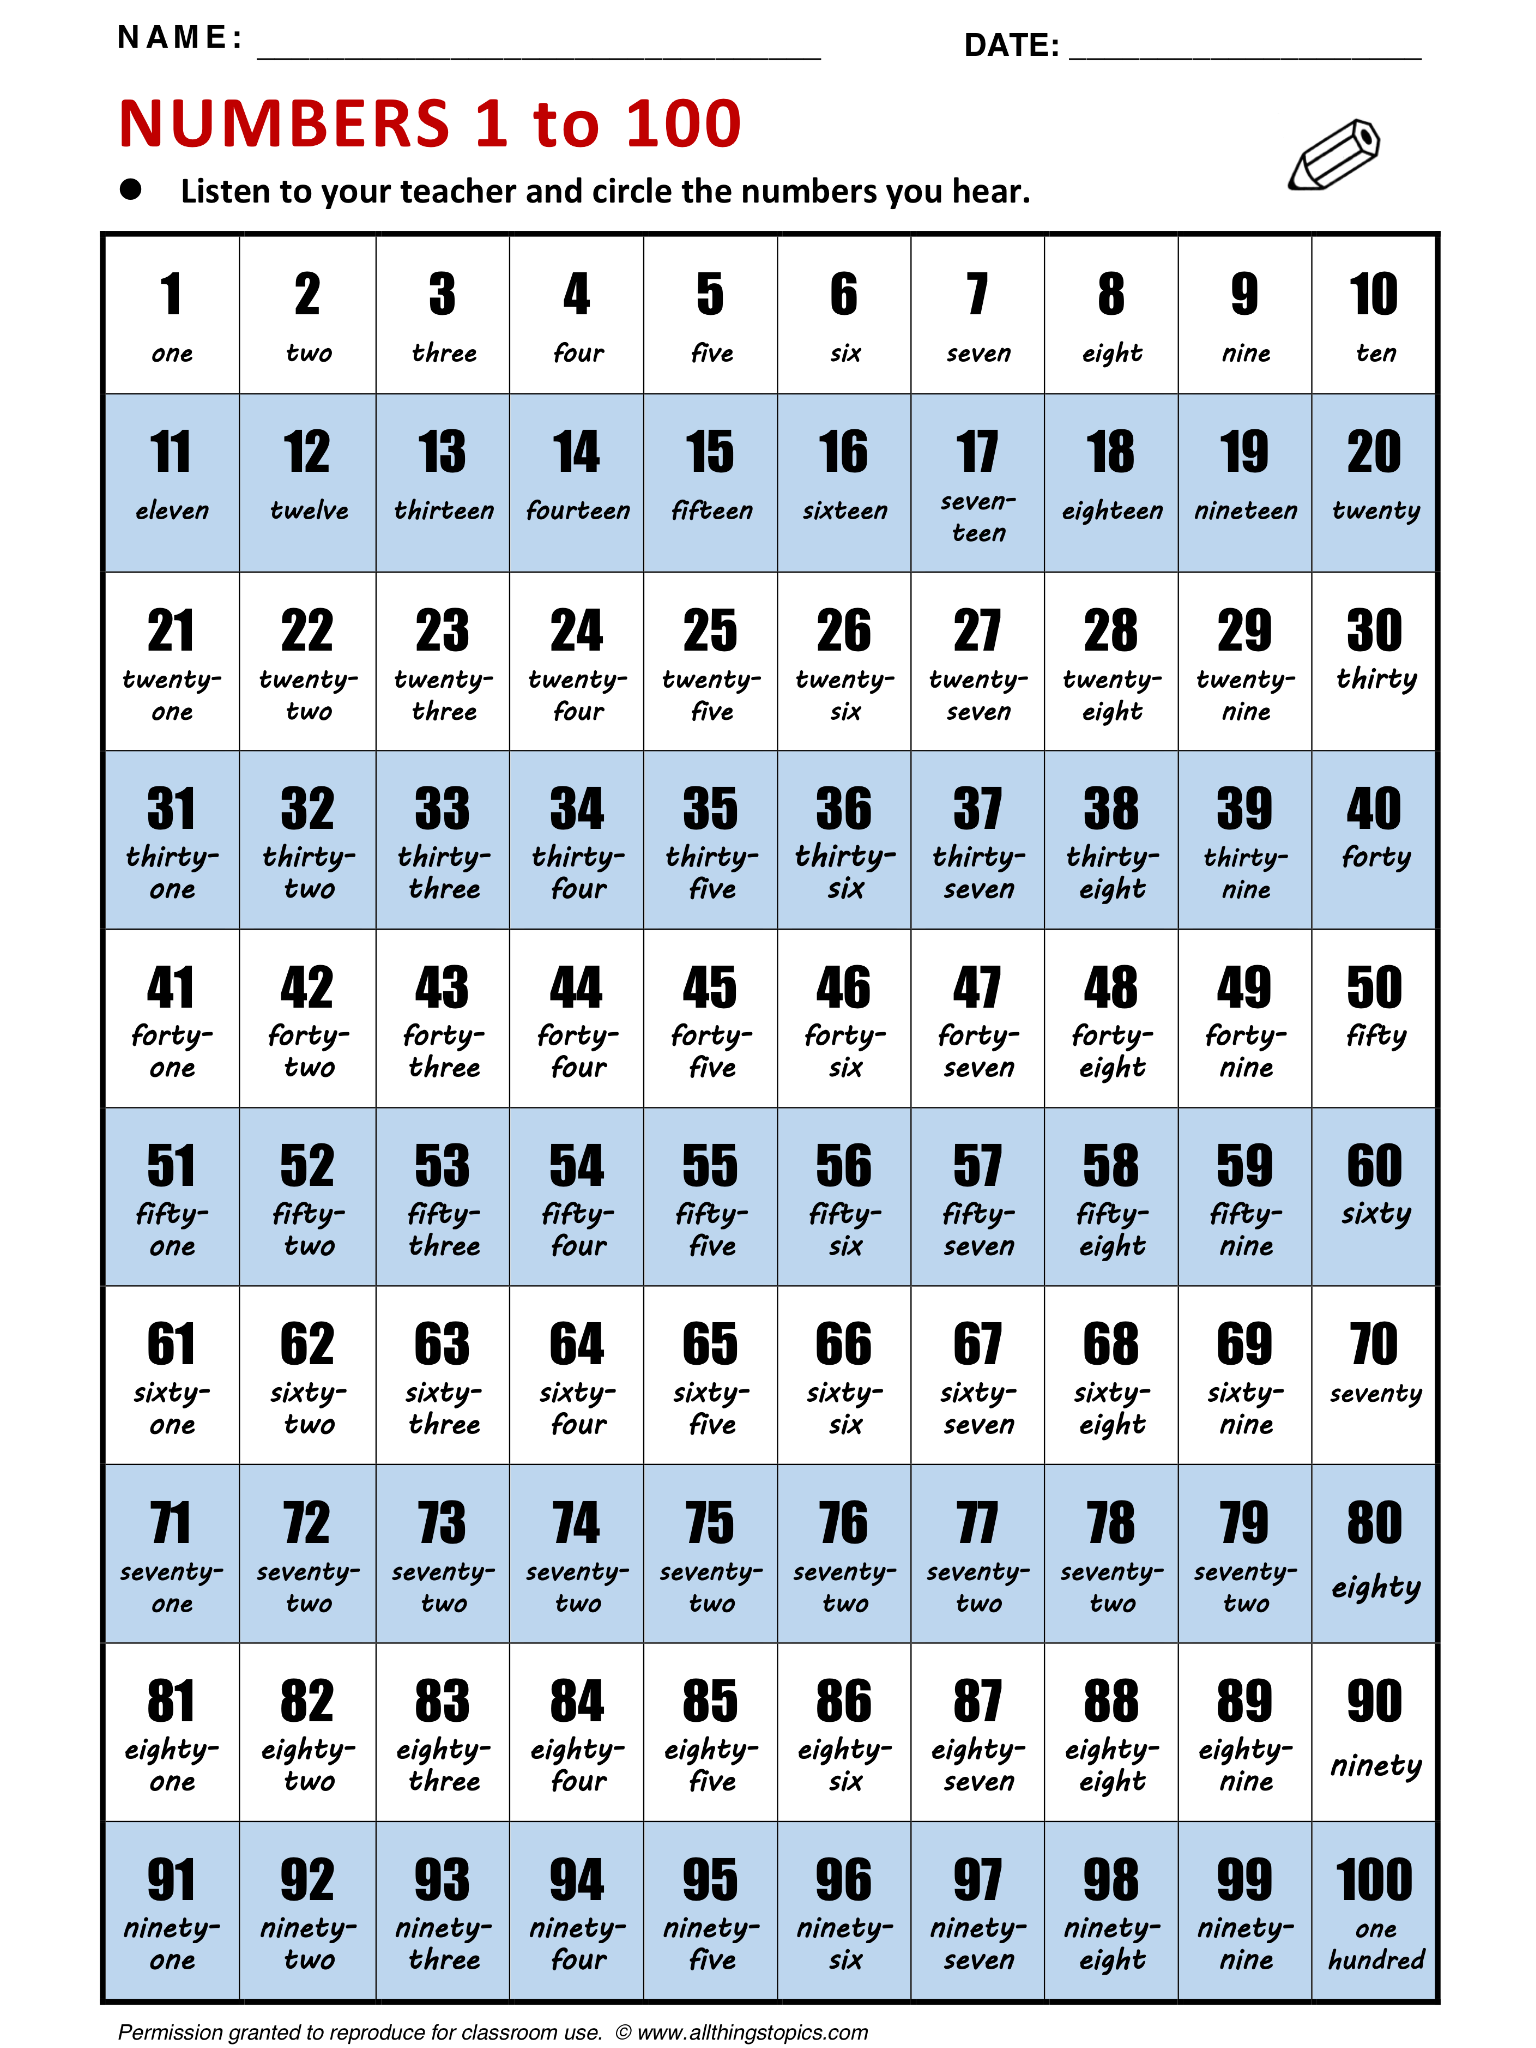 Worksheets Counting Chart 1 To 100 English Image Hd number words chart 1 1000 welkom op deze website fairy tales numbers to 100 english learning vocabulary esl phrases